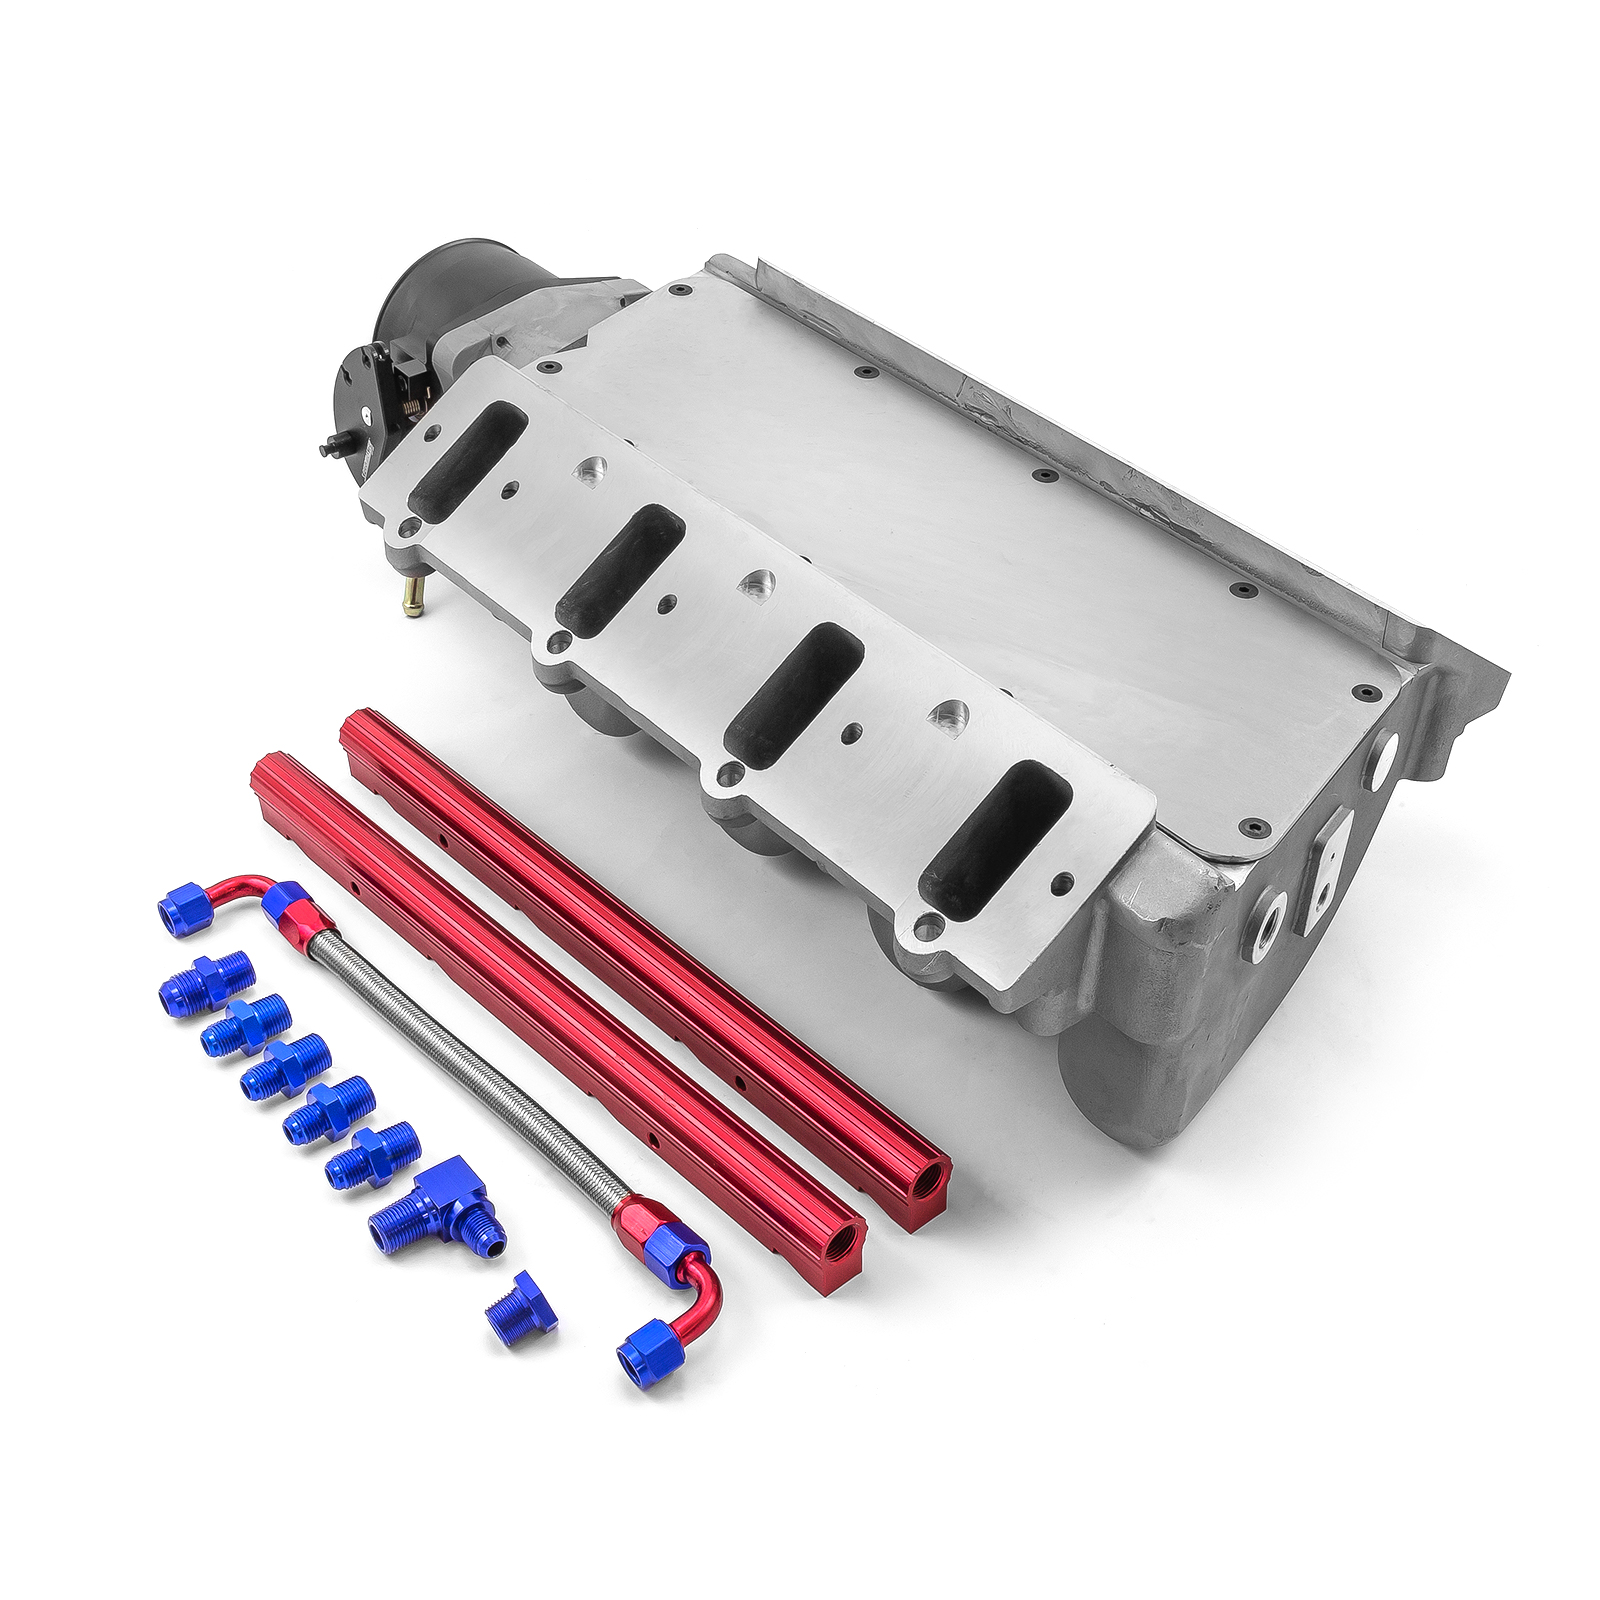 PCE® PCE148.1113 Chevy LS1 LS2 LS6 EFI Intake Manifold Satin with 92mm Throttle Body